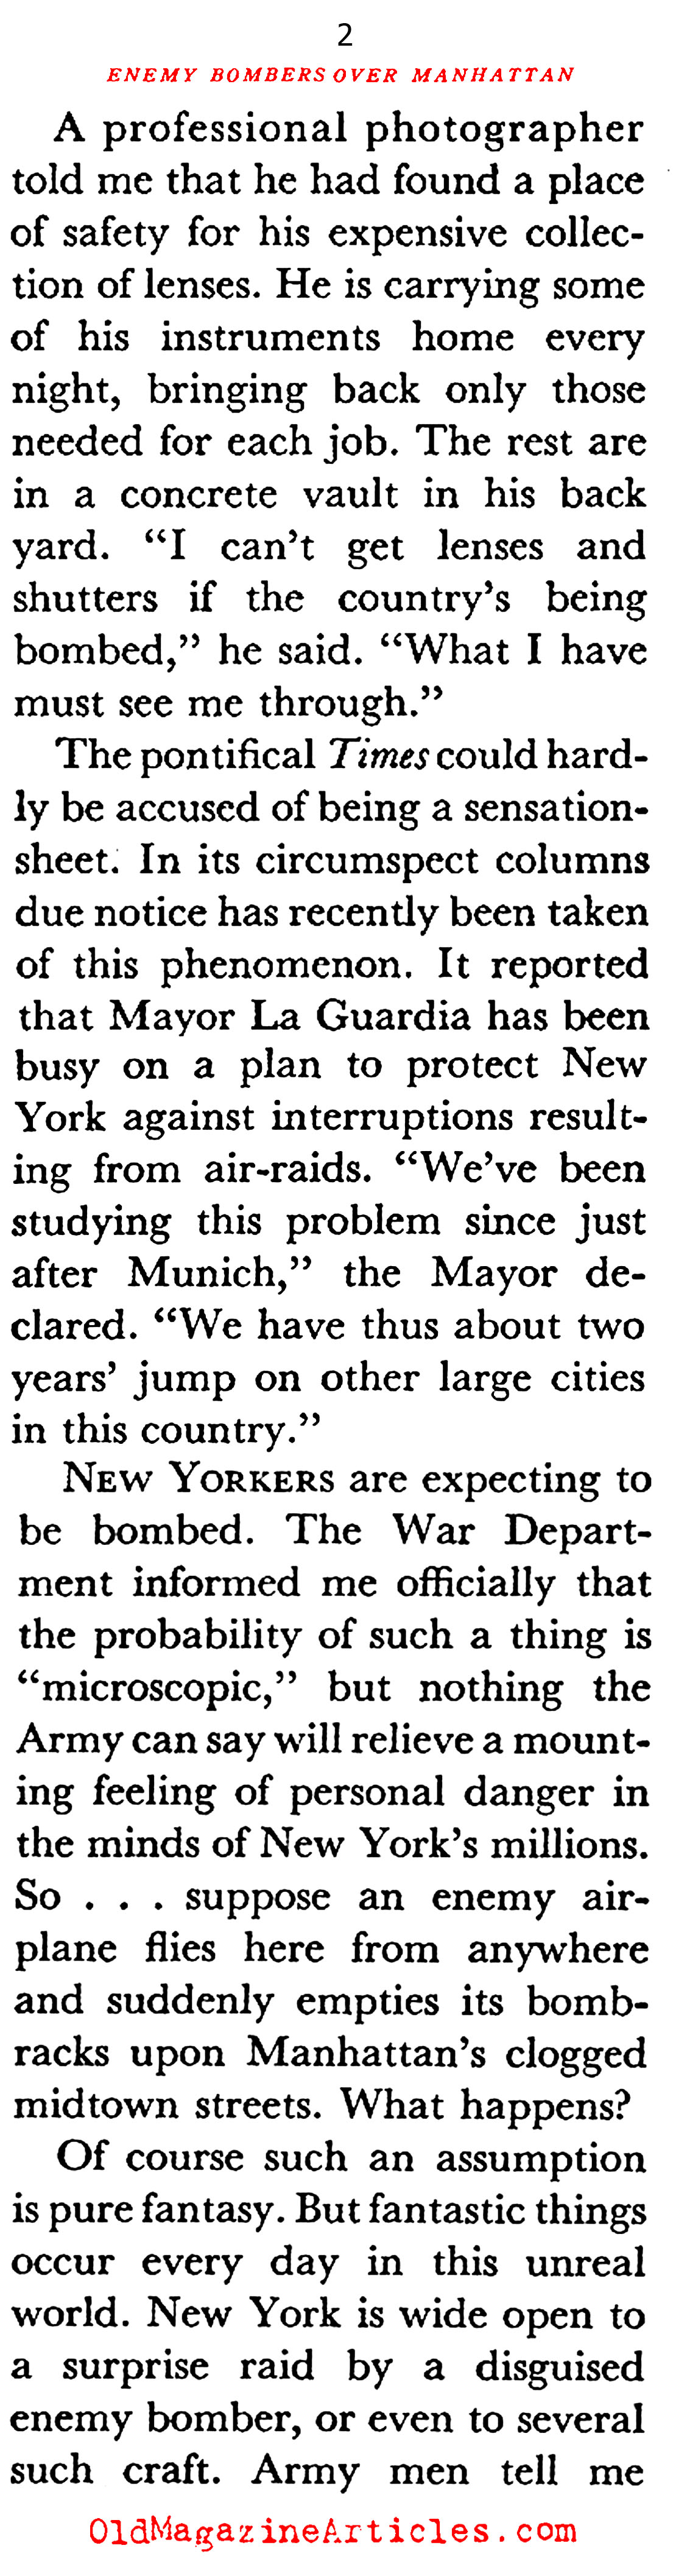 New York Beneath a Bombsight (Coronet Magazine, 1941)